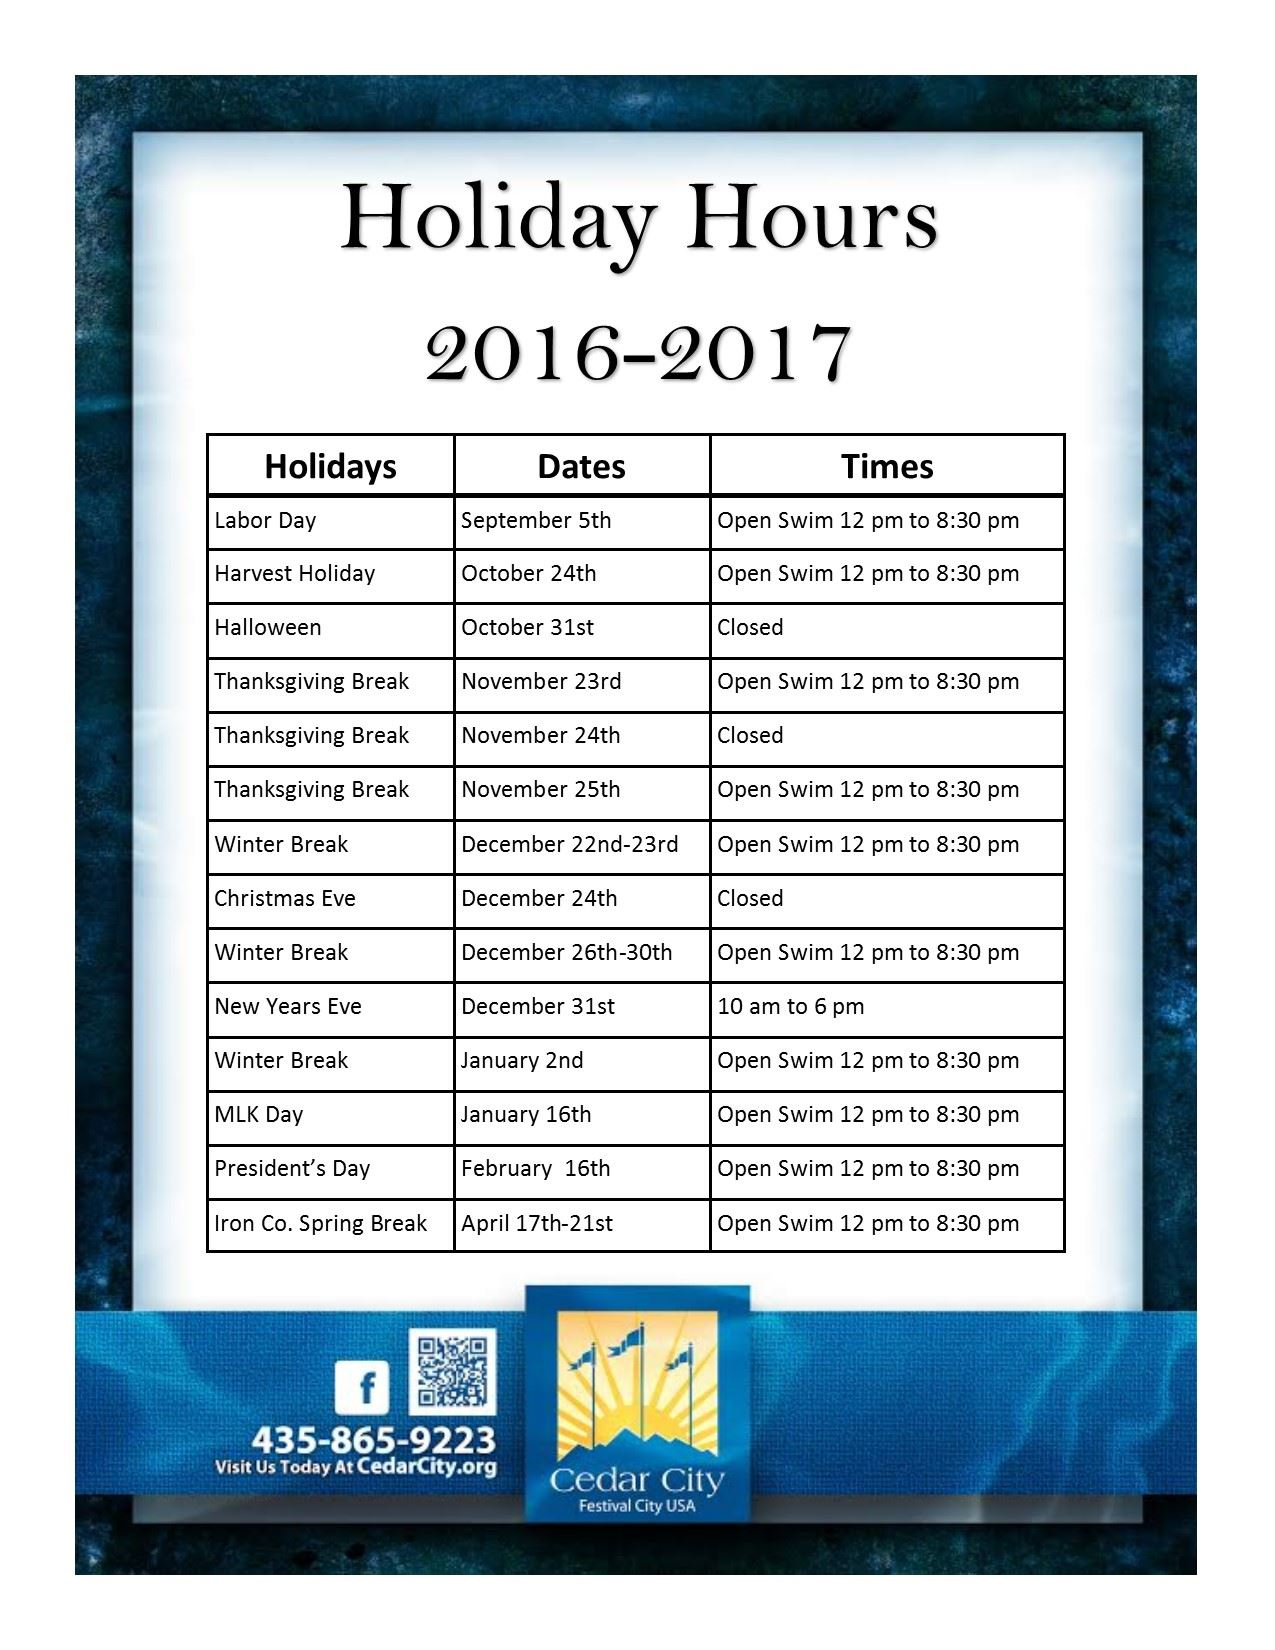 Holiday Hours 16-17